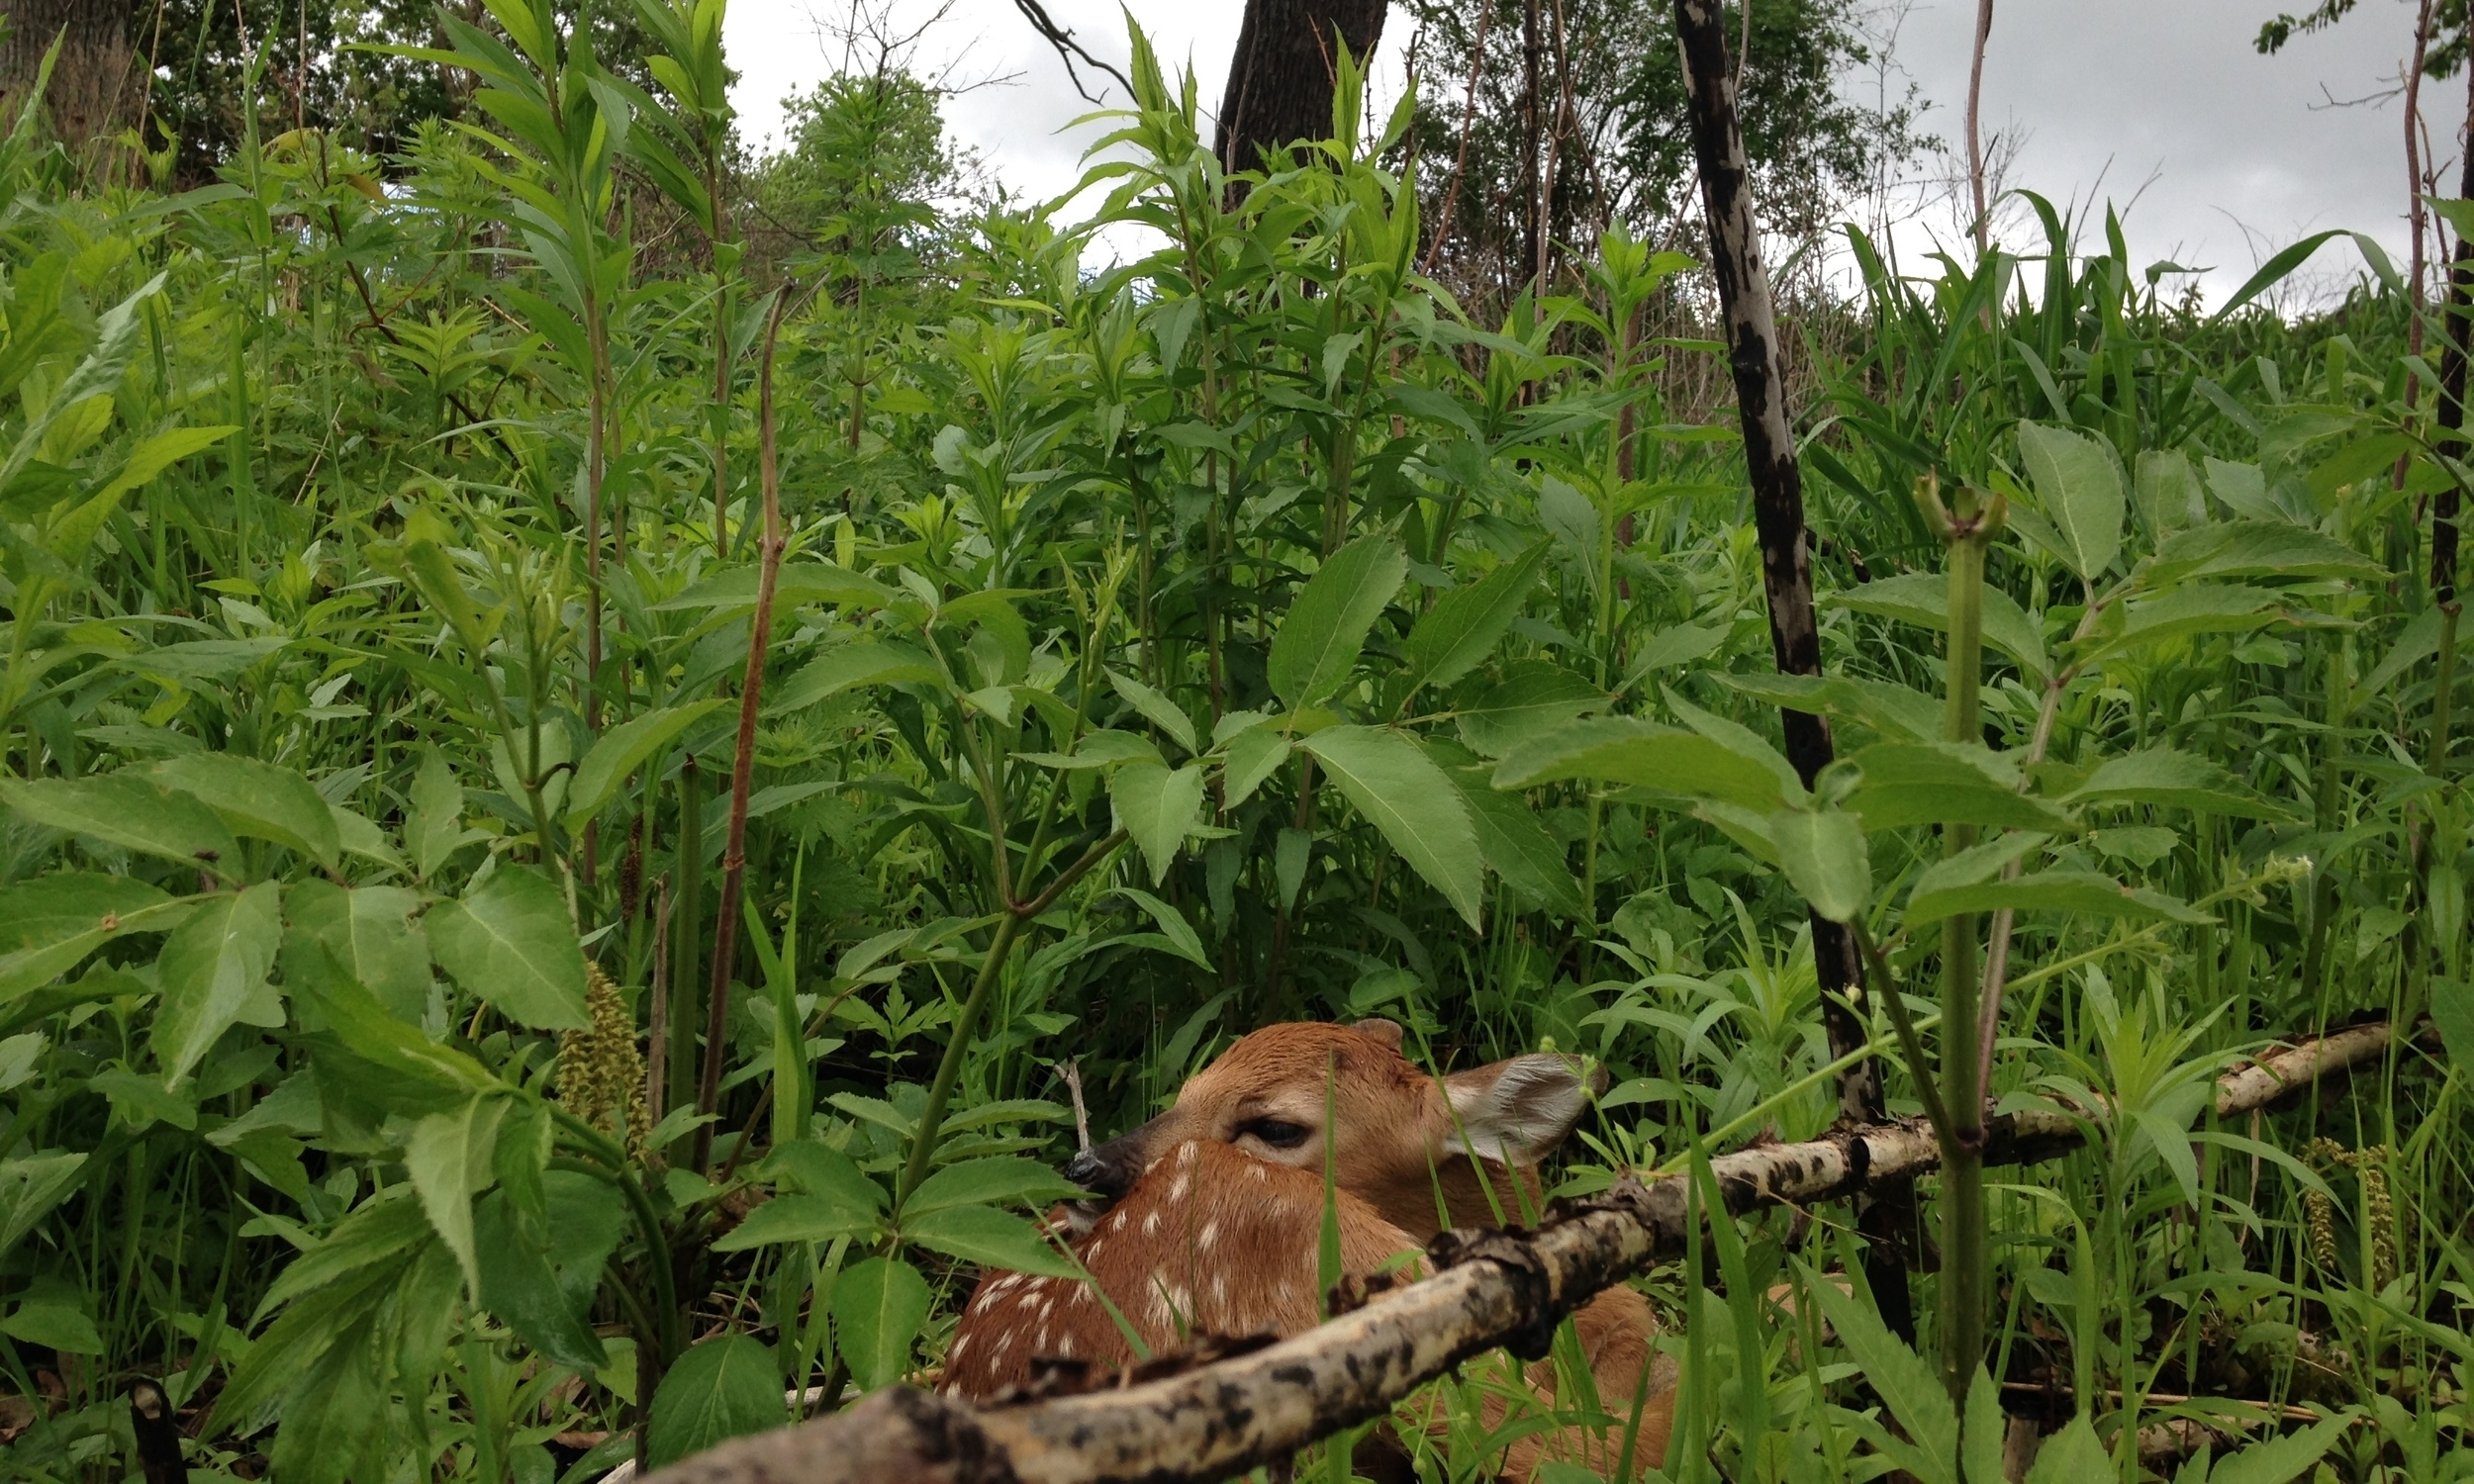 A whitetail fawn at rest in Faville Woods